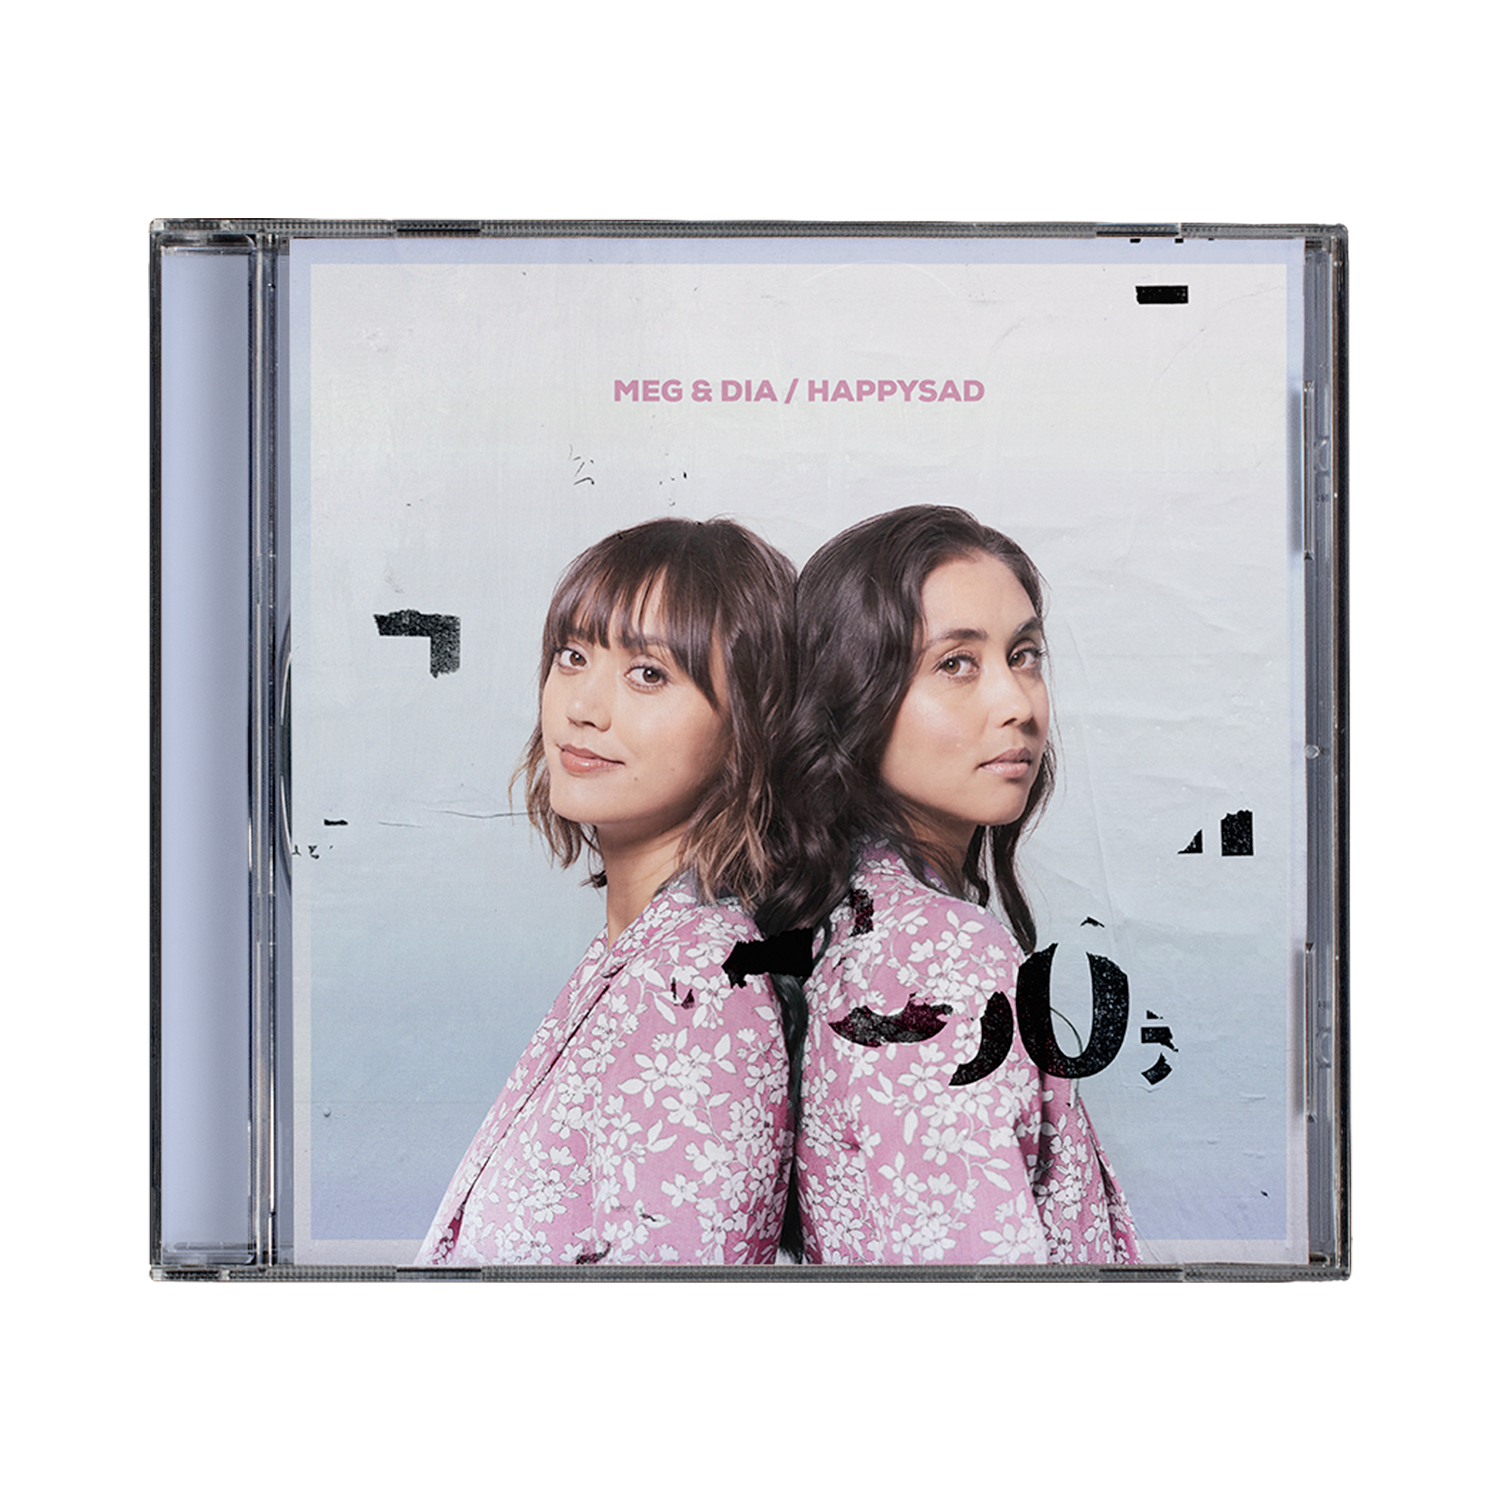 Meg & Dia 'happysad' CD